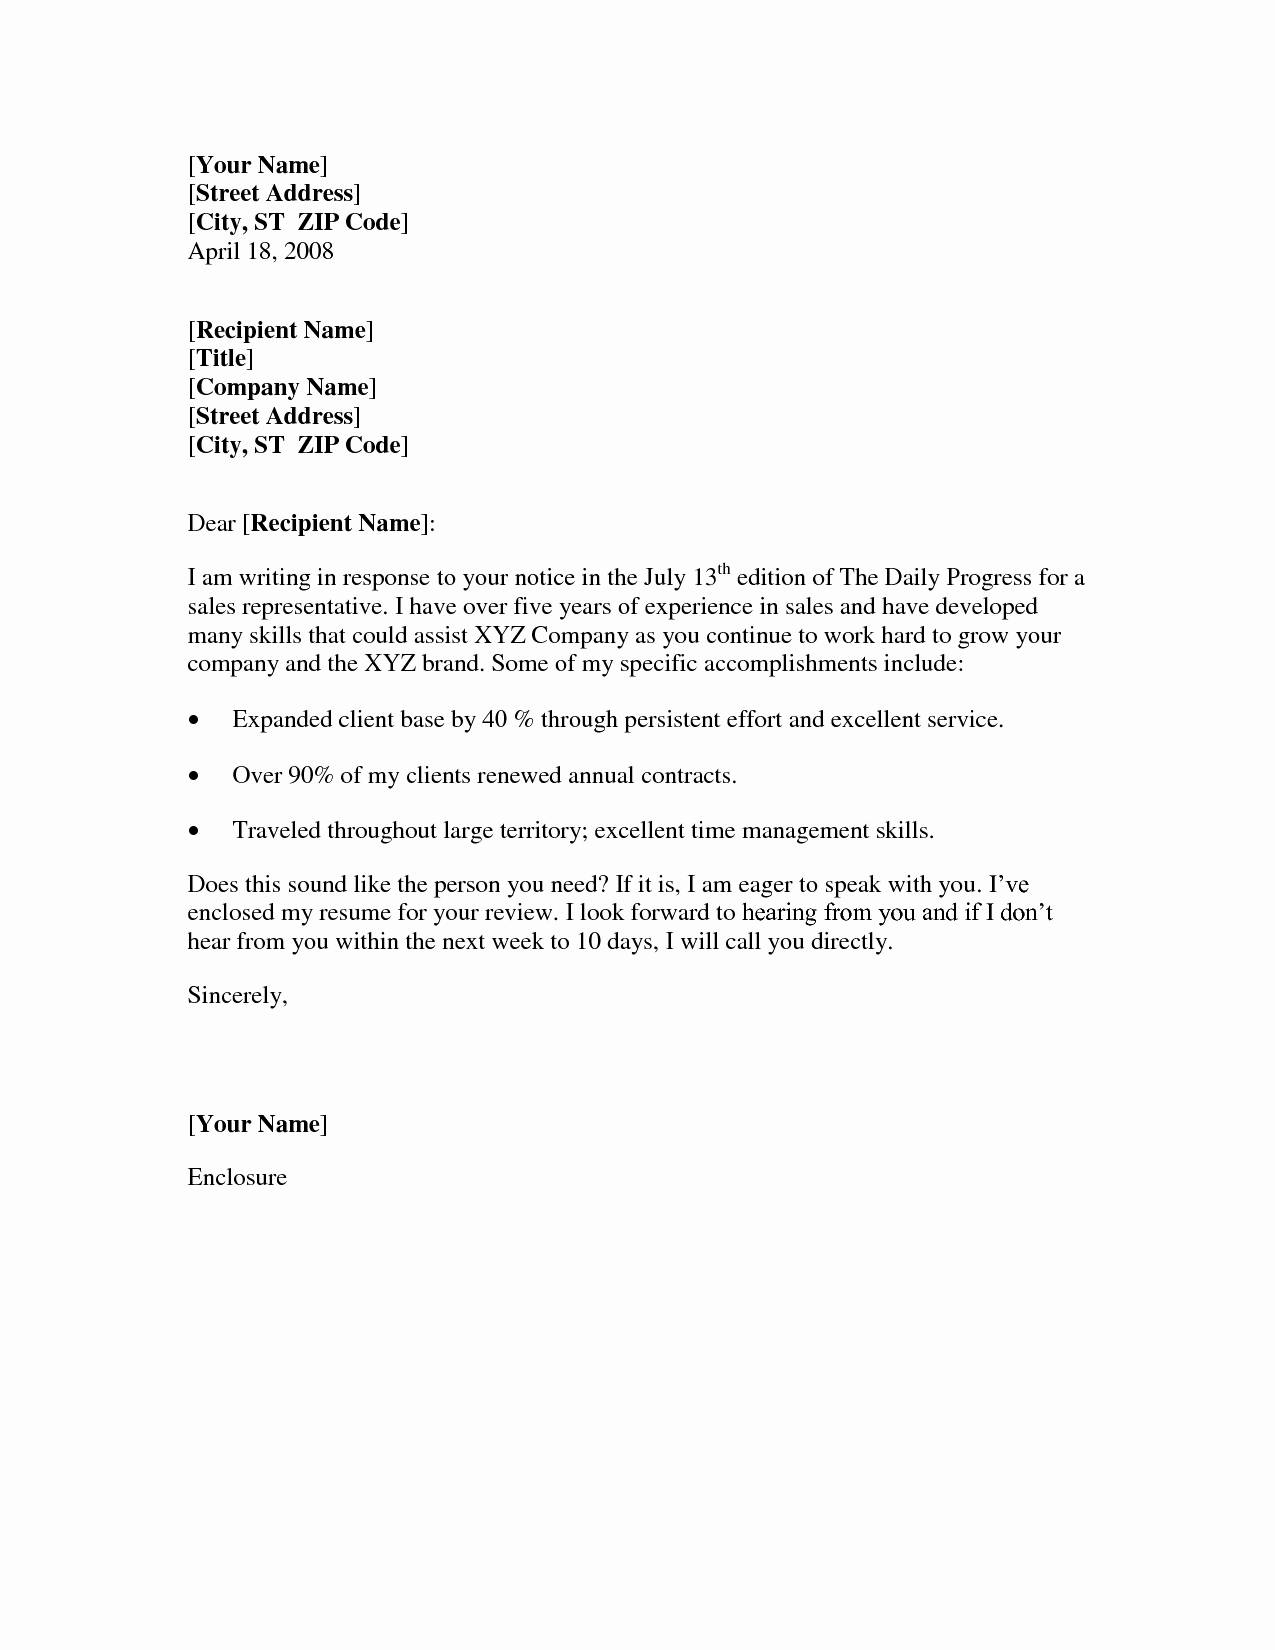 Submittal Cover Letter Template - Covering Letter for Submission Documents Awesome Sending Resume